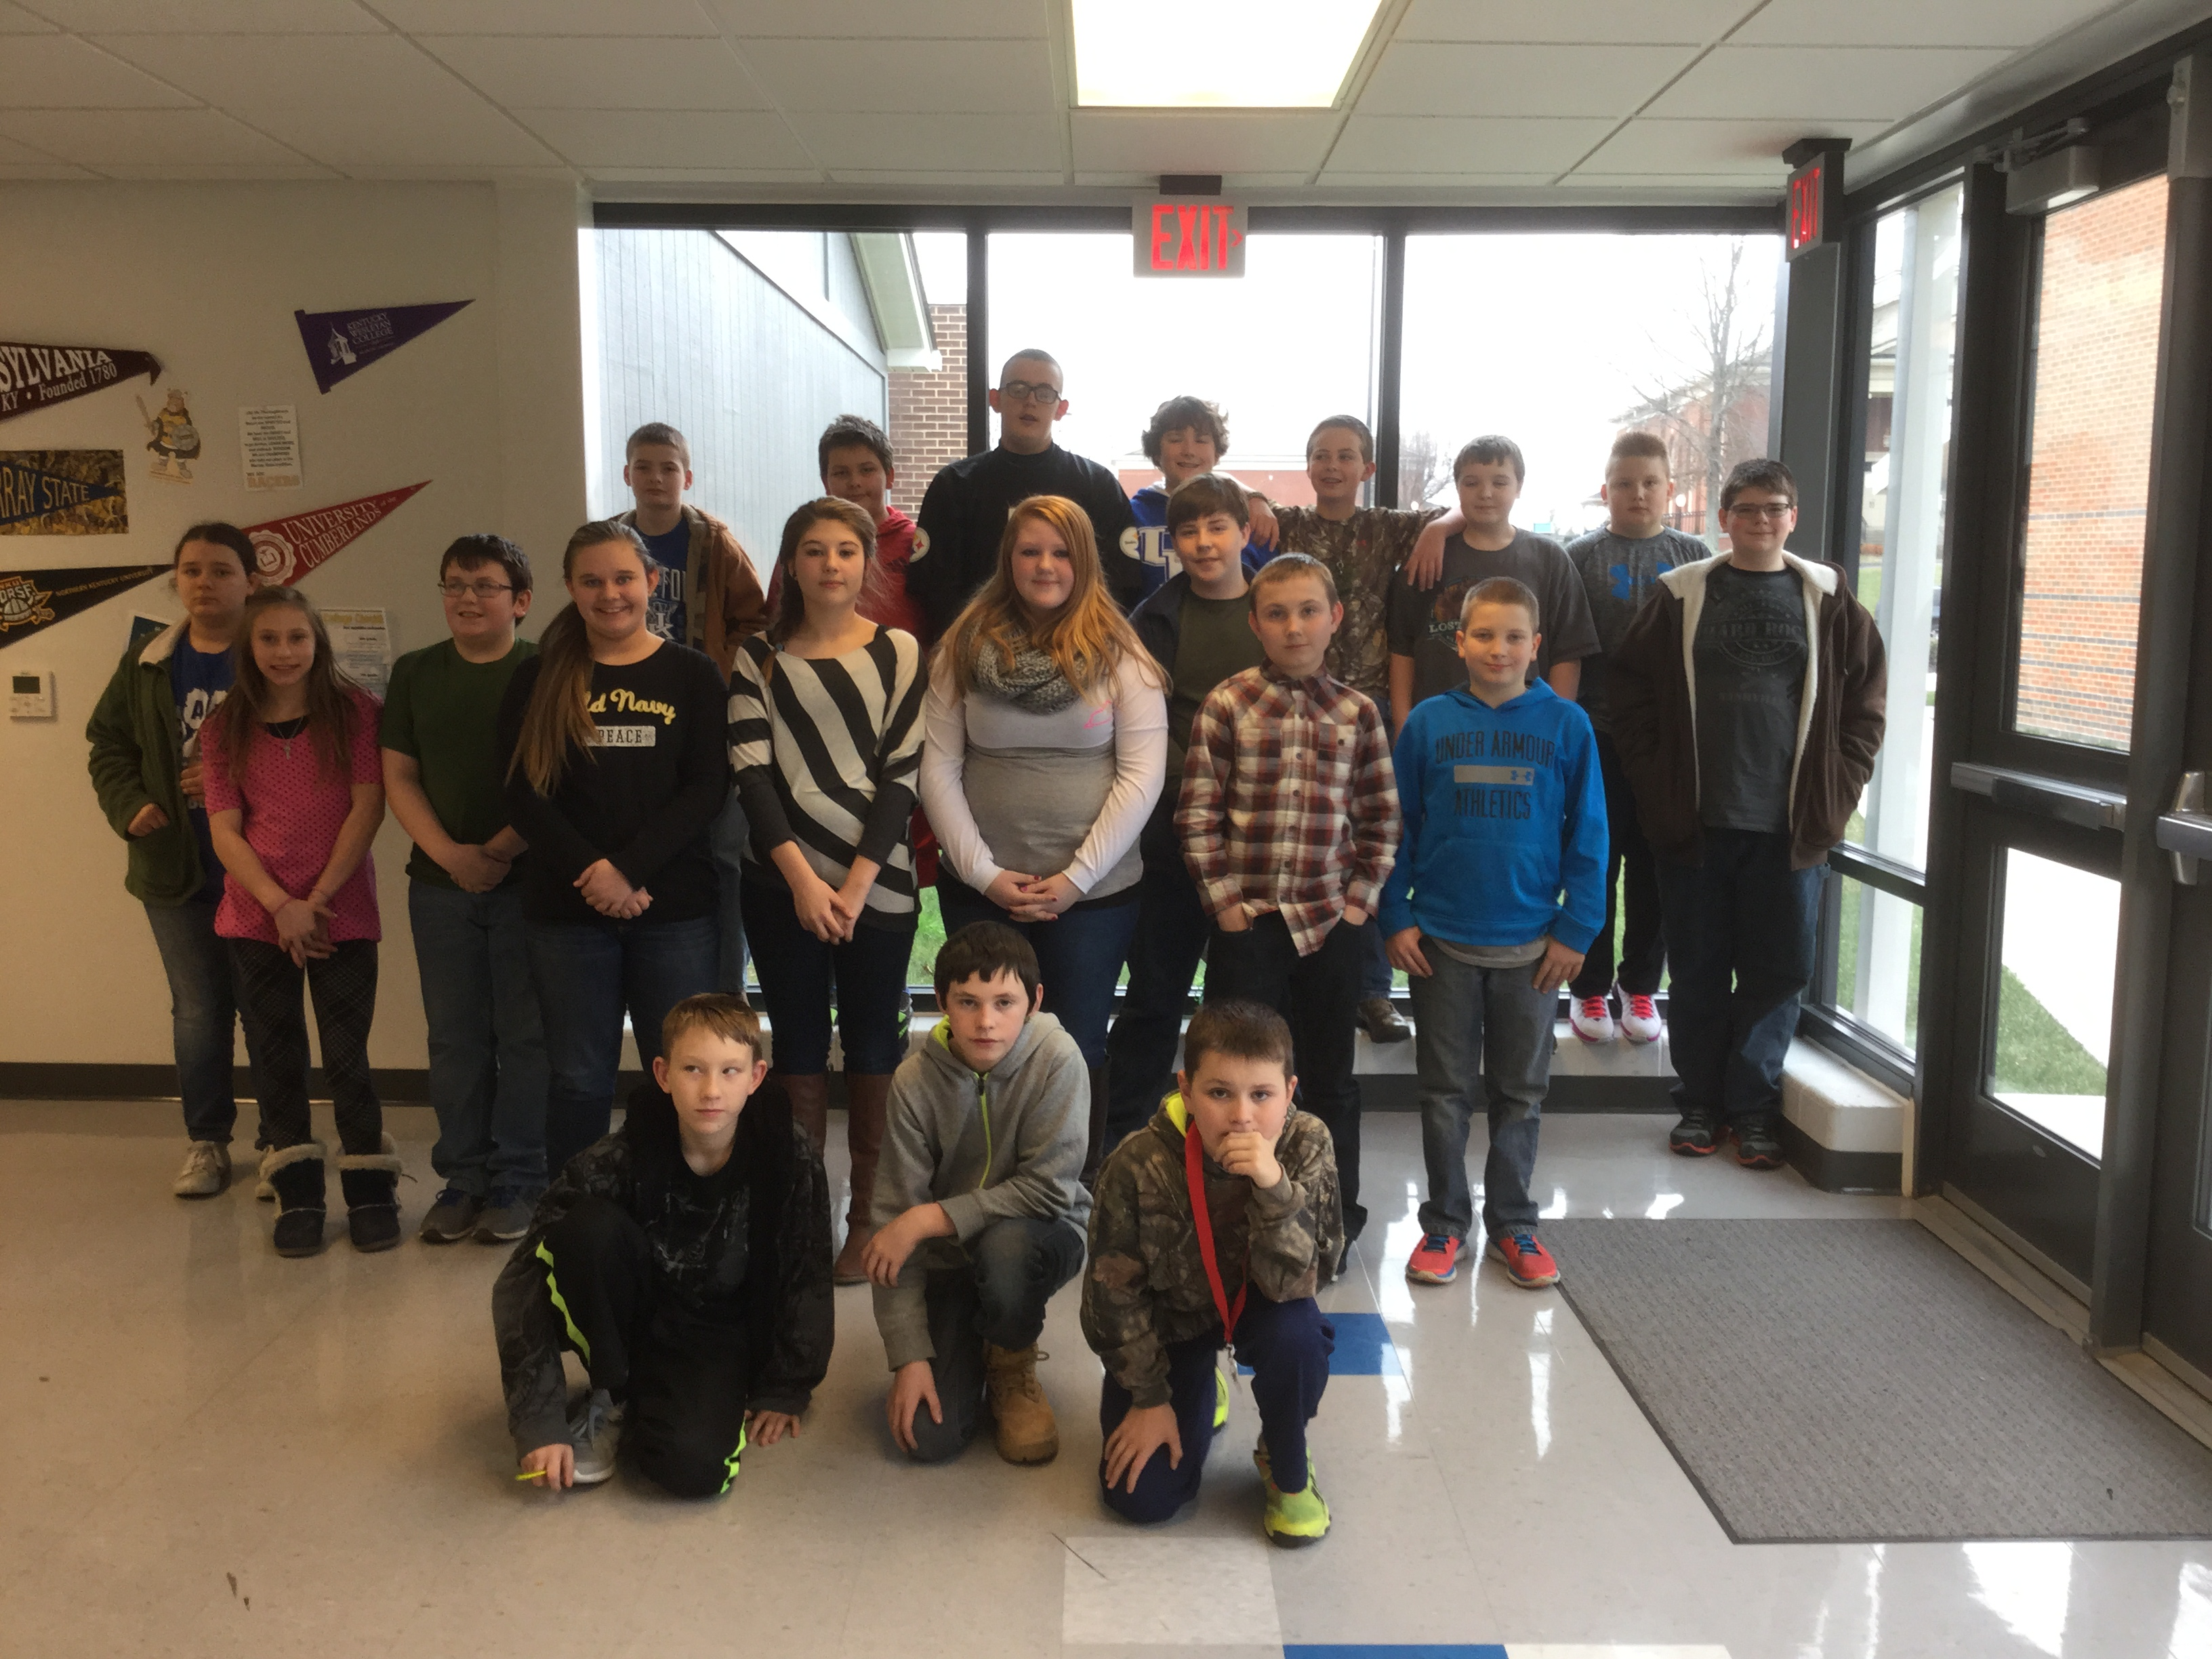 These East Bernstadt Middle School students wrote poems, illustrated them, and are published in the Young Poets' Collection.